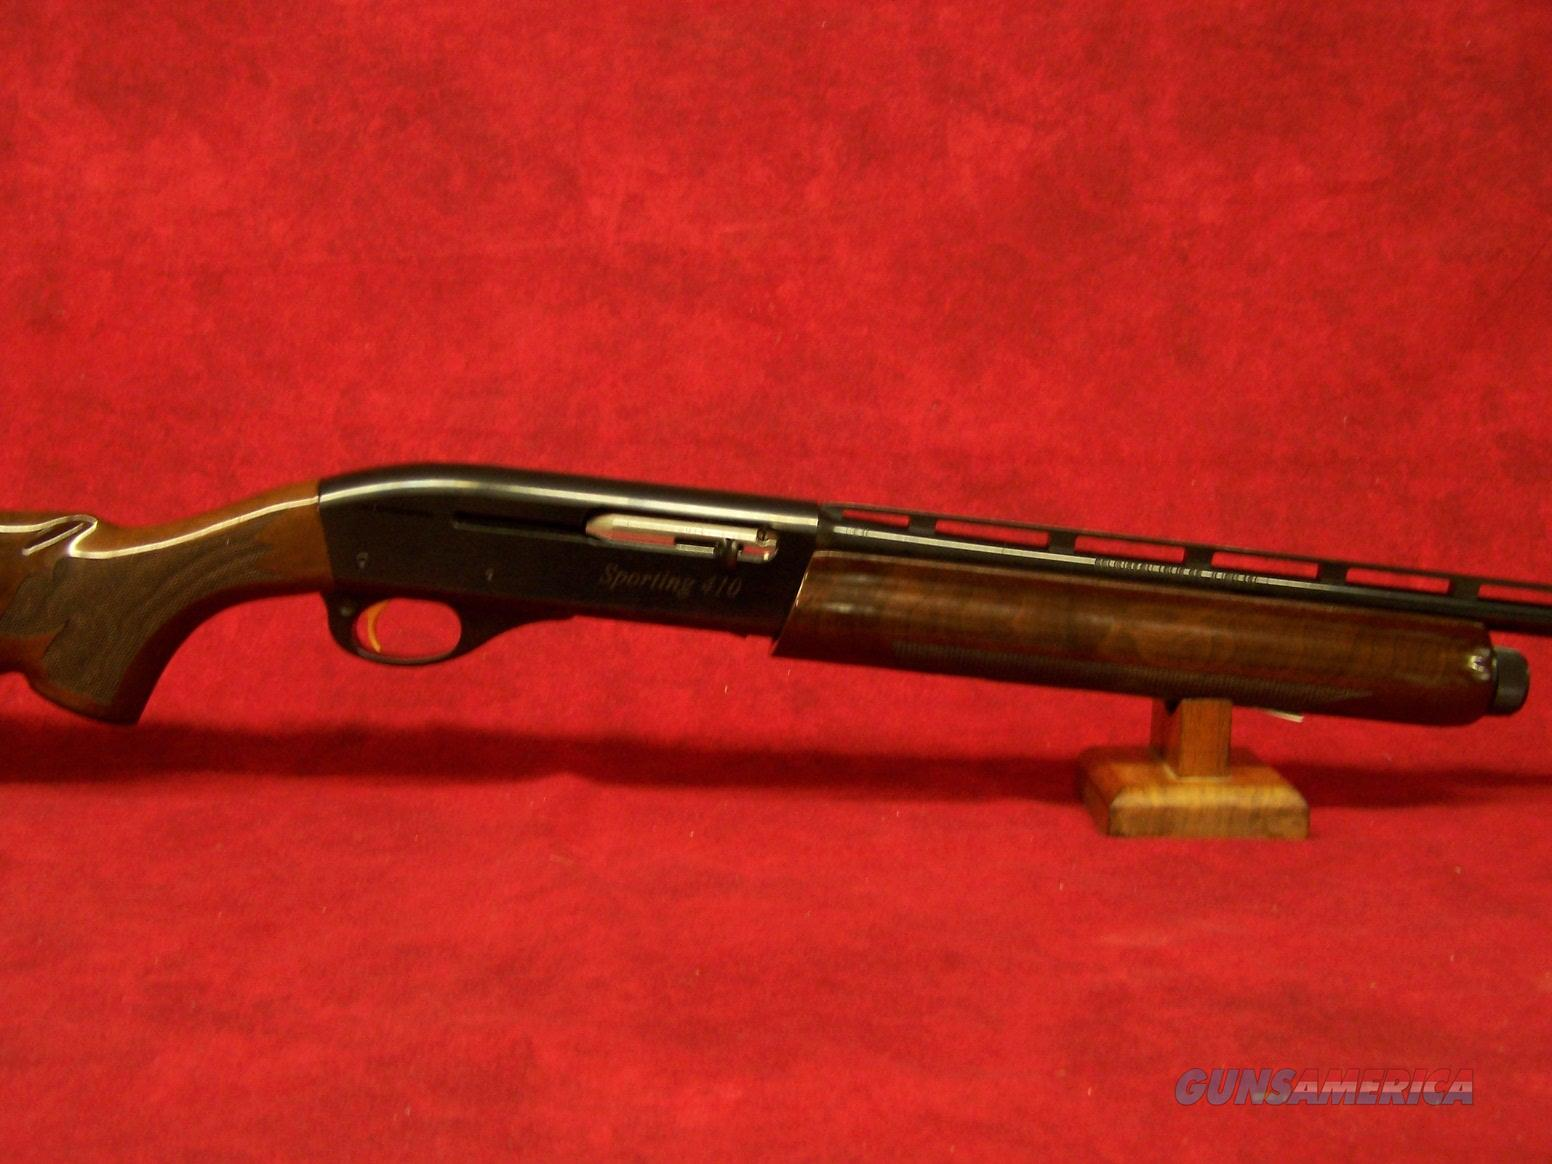 Remington Model 1100 Sporting .410 Gauge 3 Inch Chamber 27 Inch Vent Rib Barrel Blue Finish American Walnut Stock (29549)  Guns > Shotguns > Remington Shotguns  > Autoloaders > Hunting